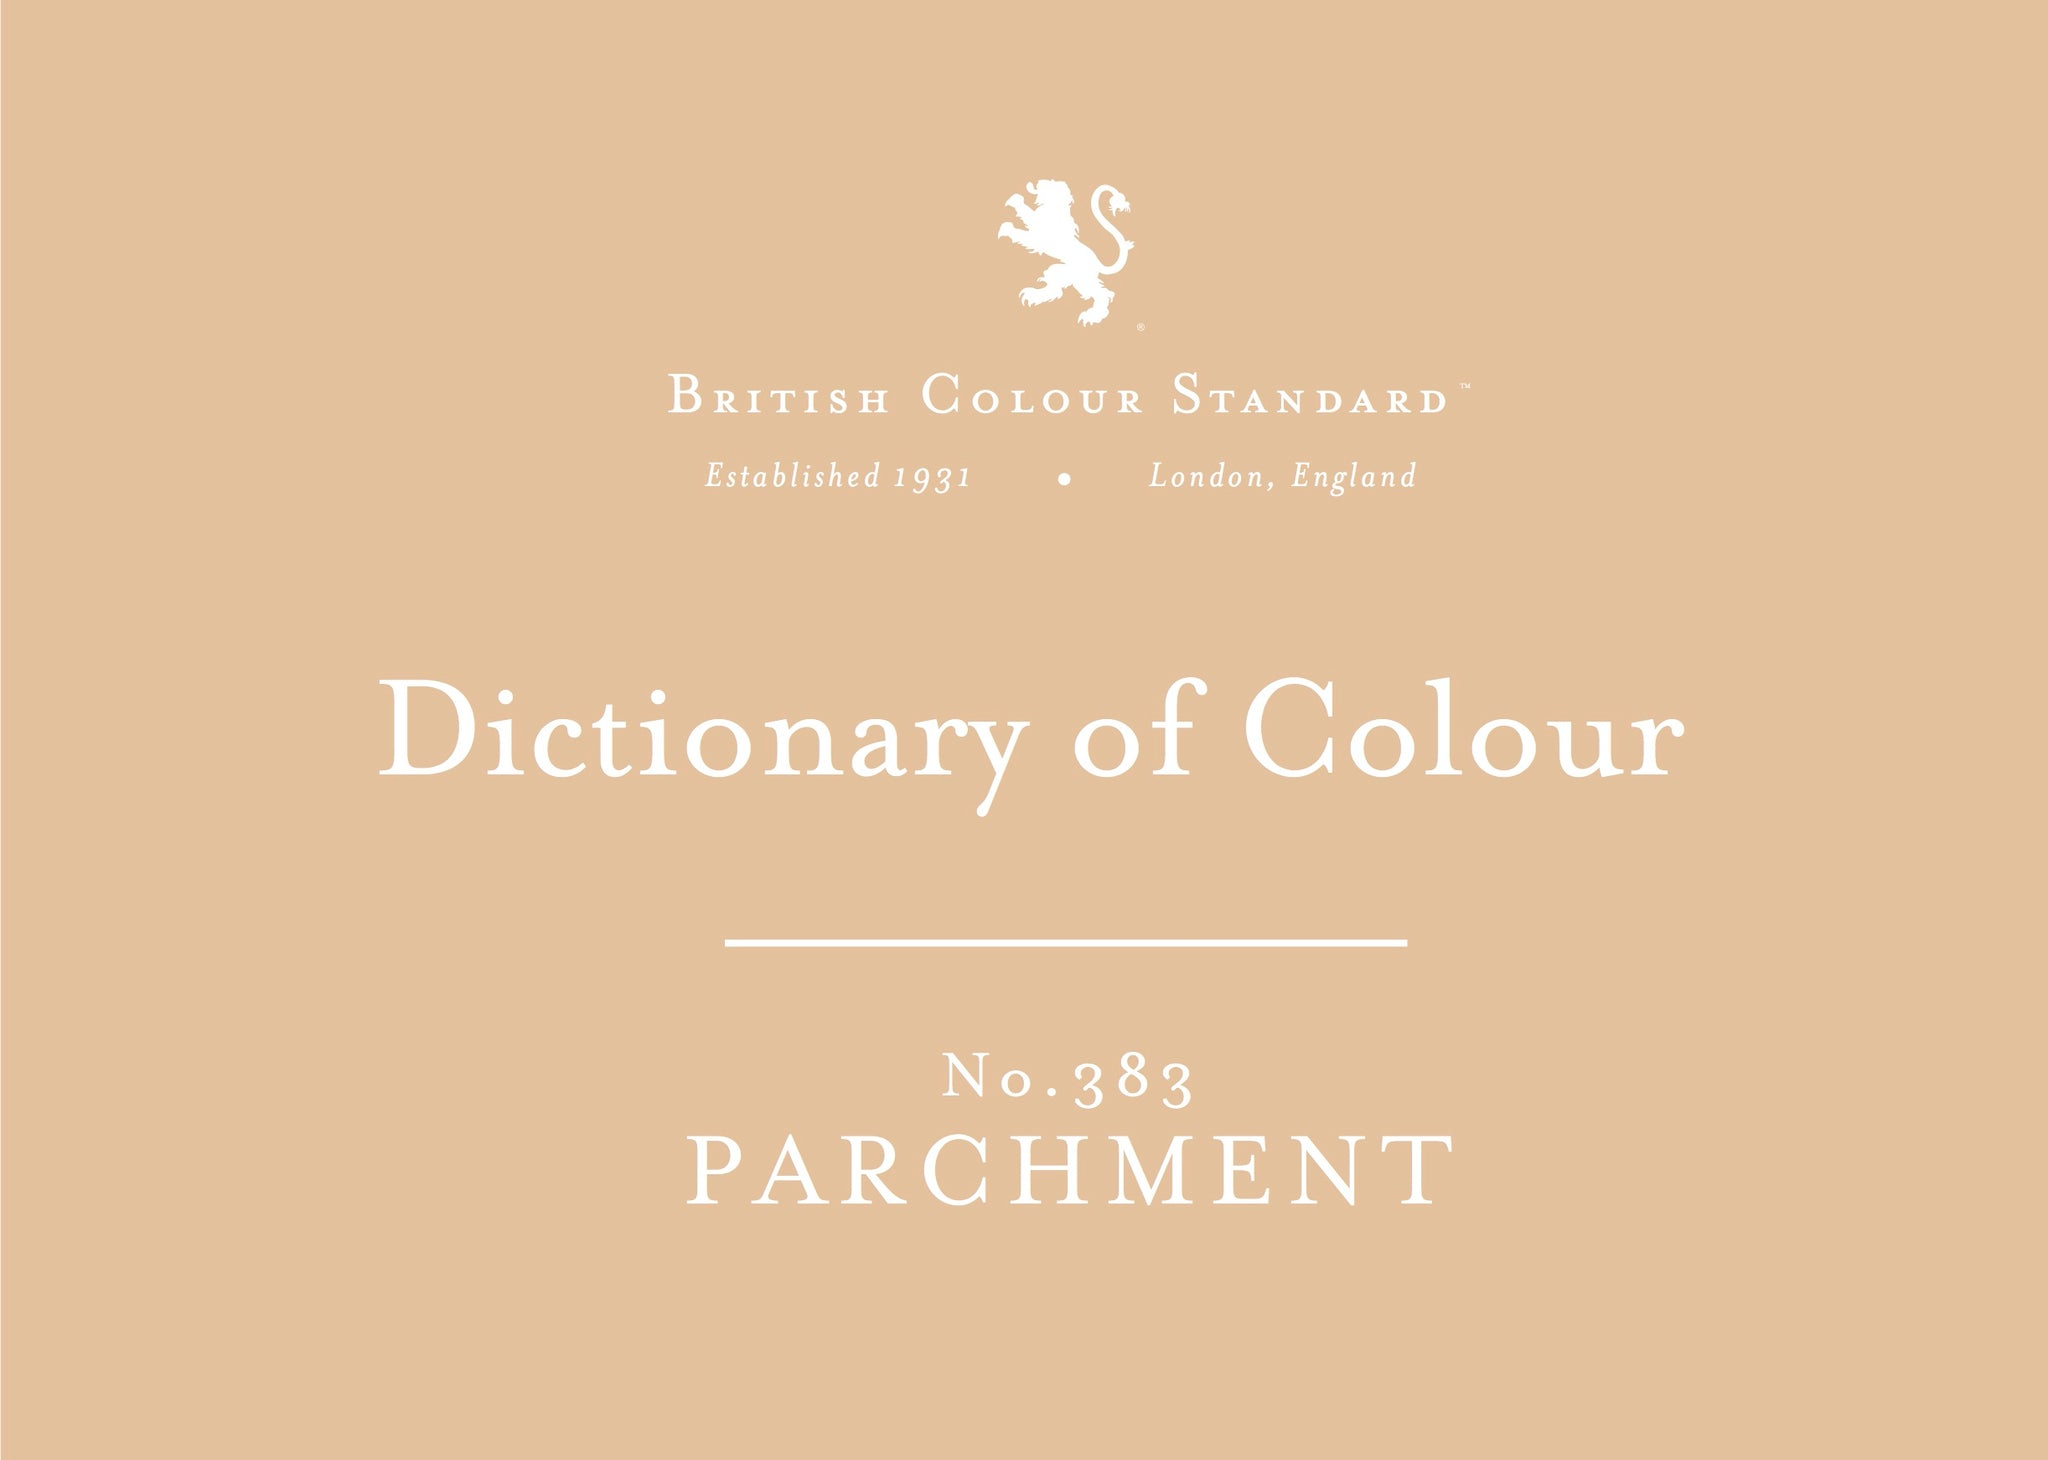 BRITISH COLOUR STANDARD - Parchment No. 383